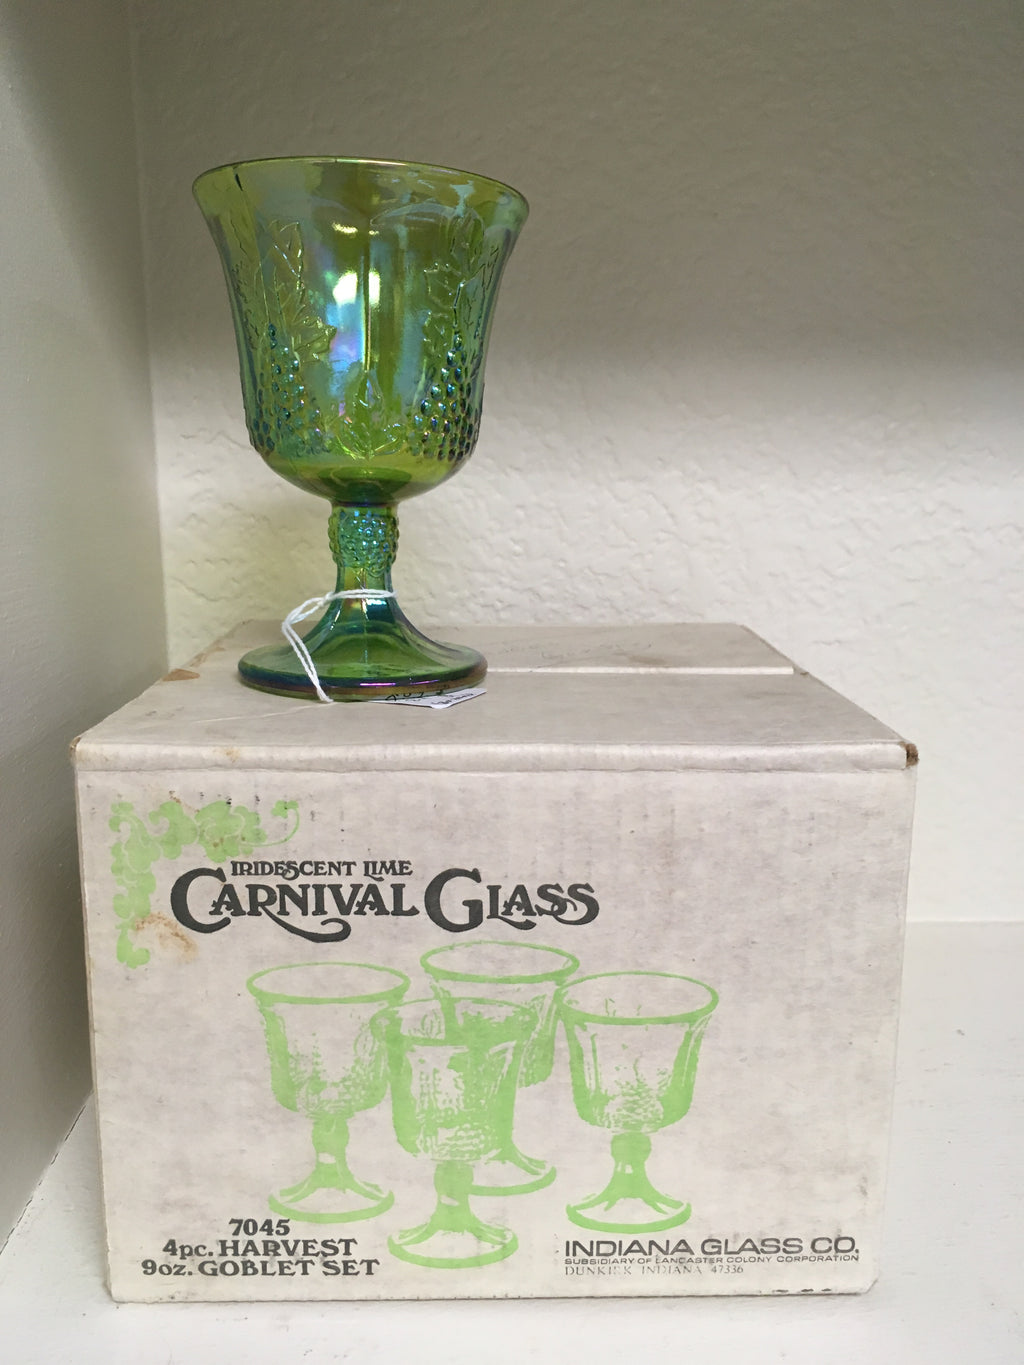 Vintage Irridescent Lime Carnival Glass 4 pc, 9 oz Goblet Set with Original Box